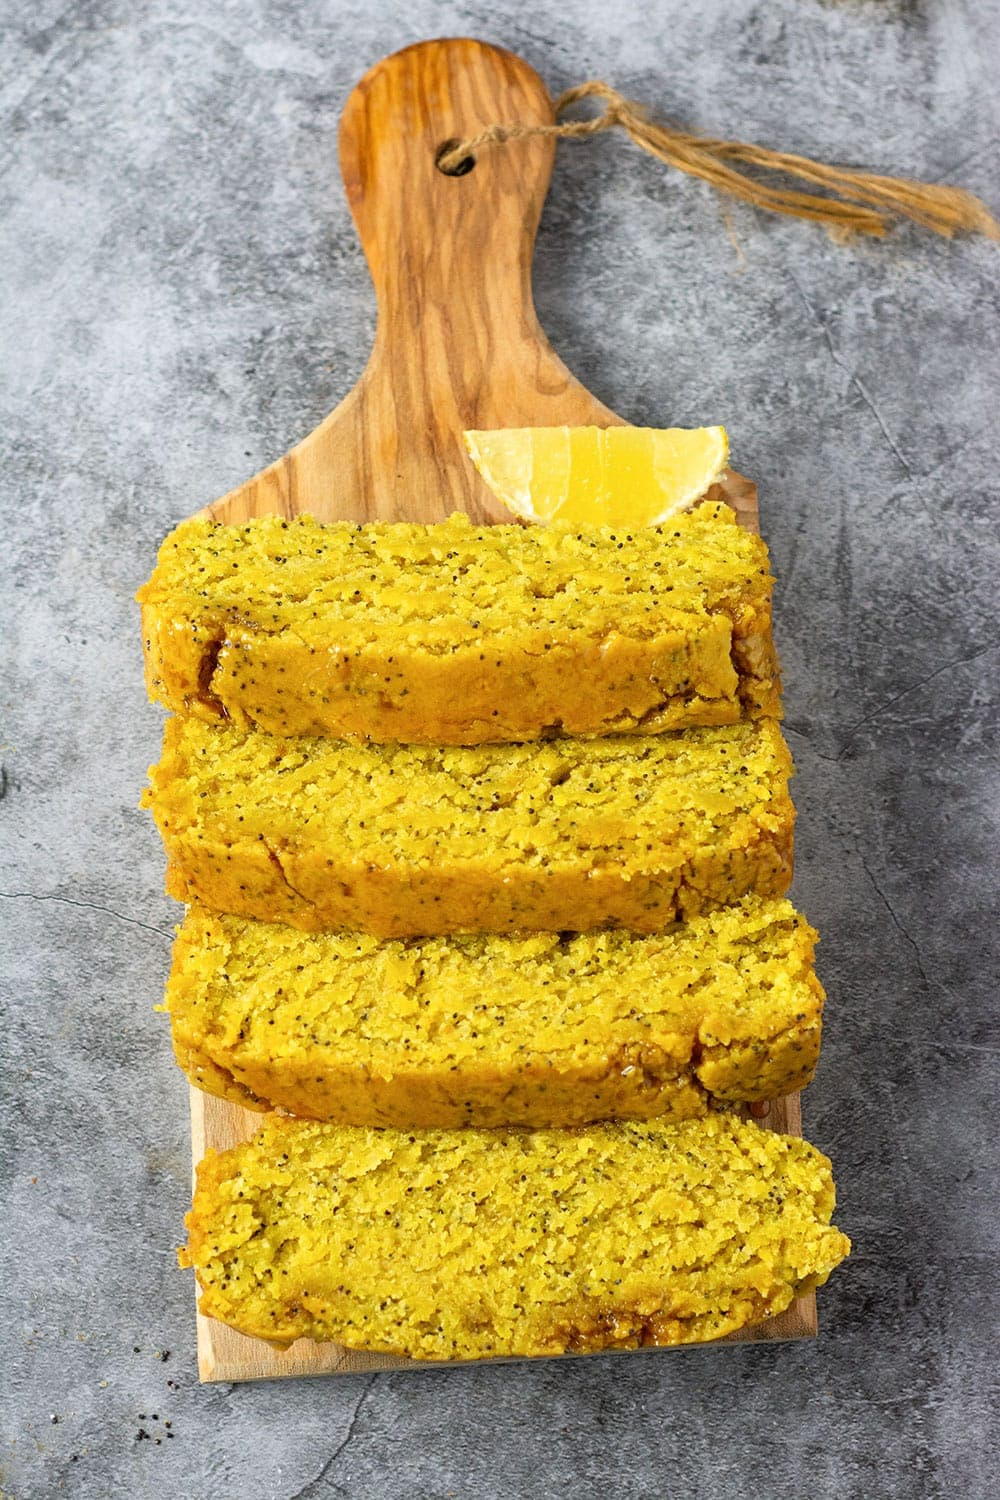 Overlay Lemon Poppy Seed Bread Vegan Gluten-free on a cutting board with lemon slices on a grey background